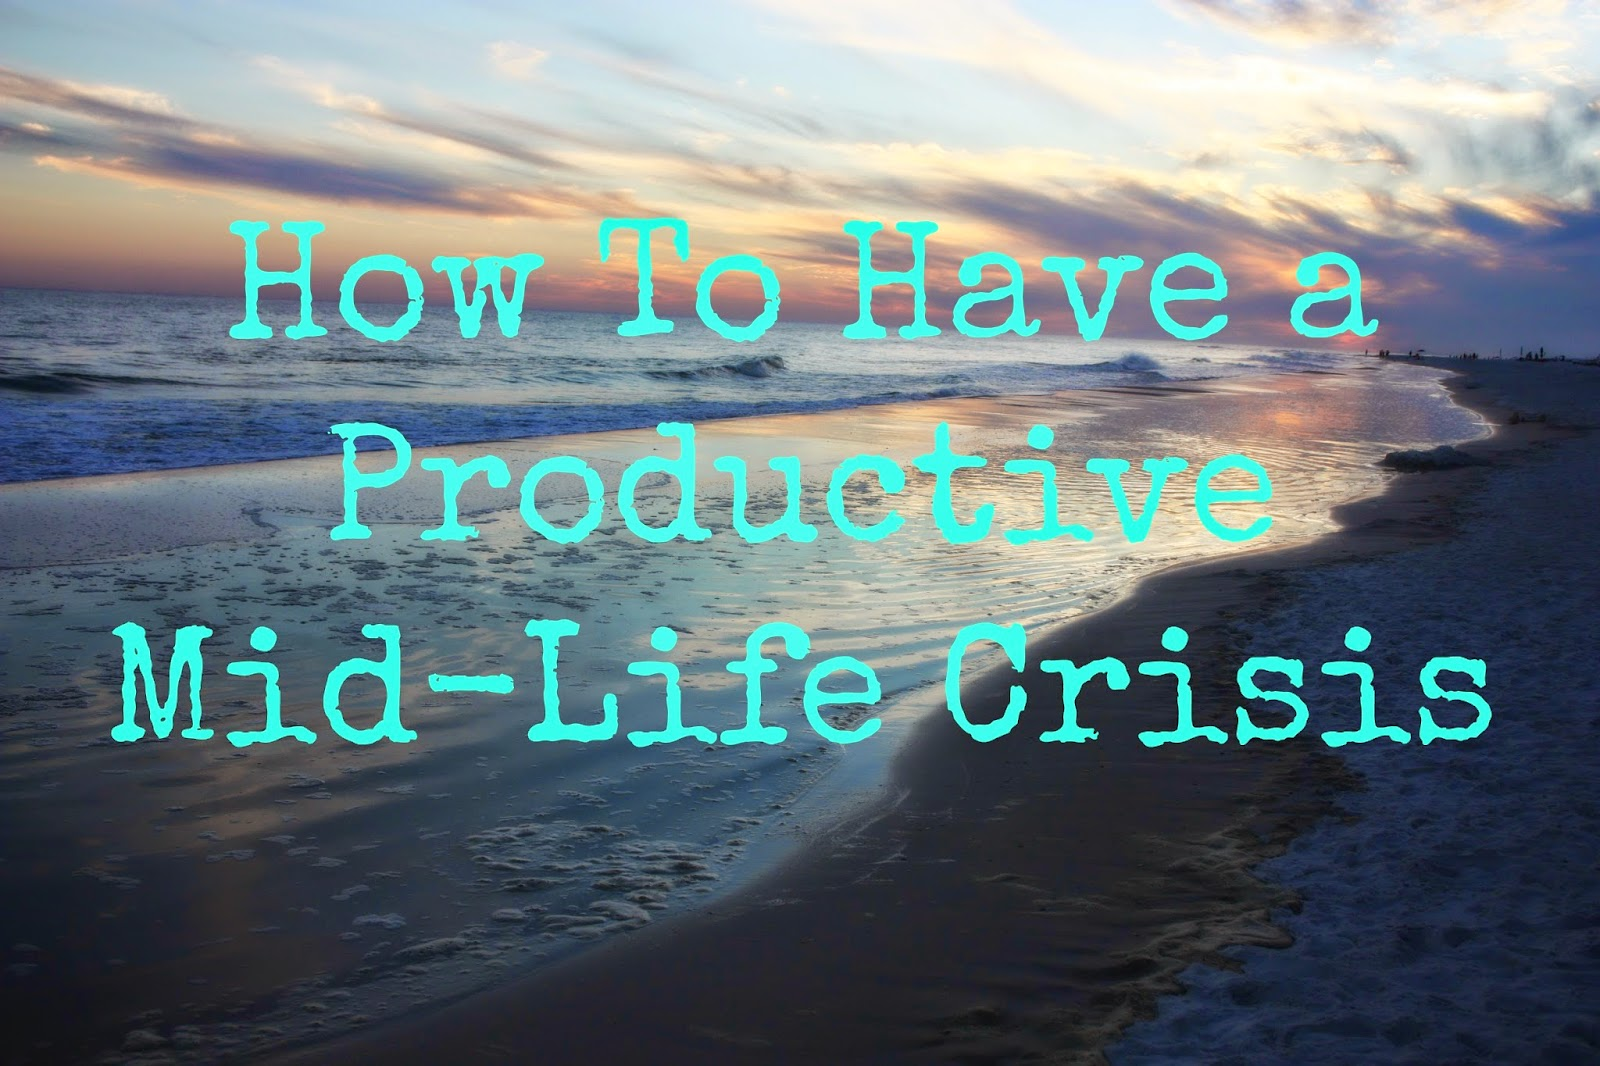 lead in to a great article about mid life crisis